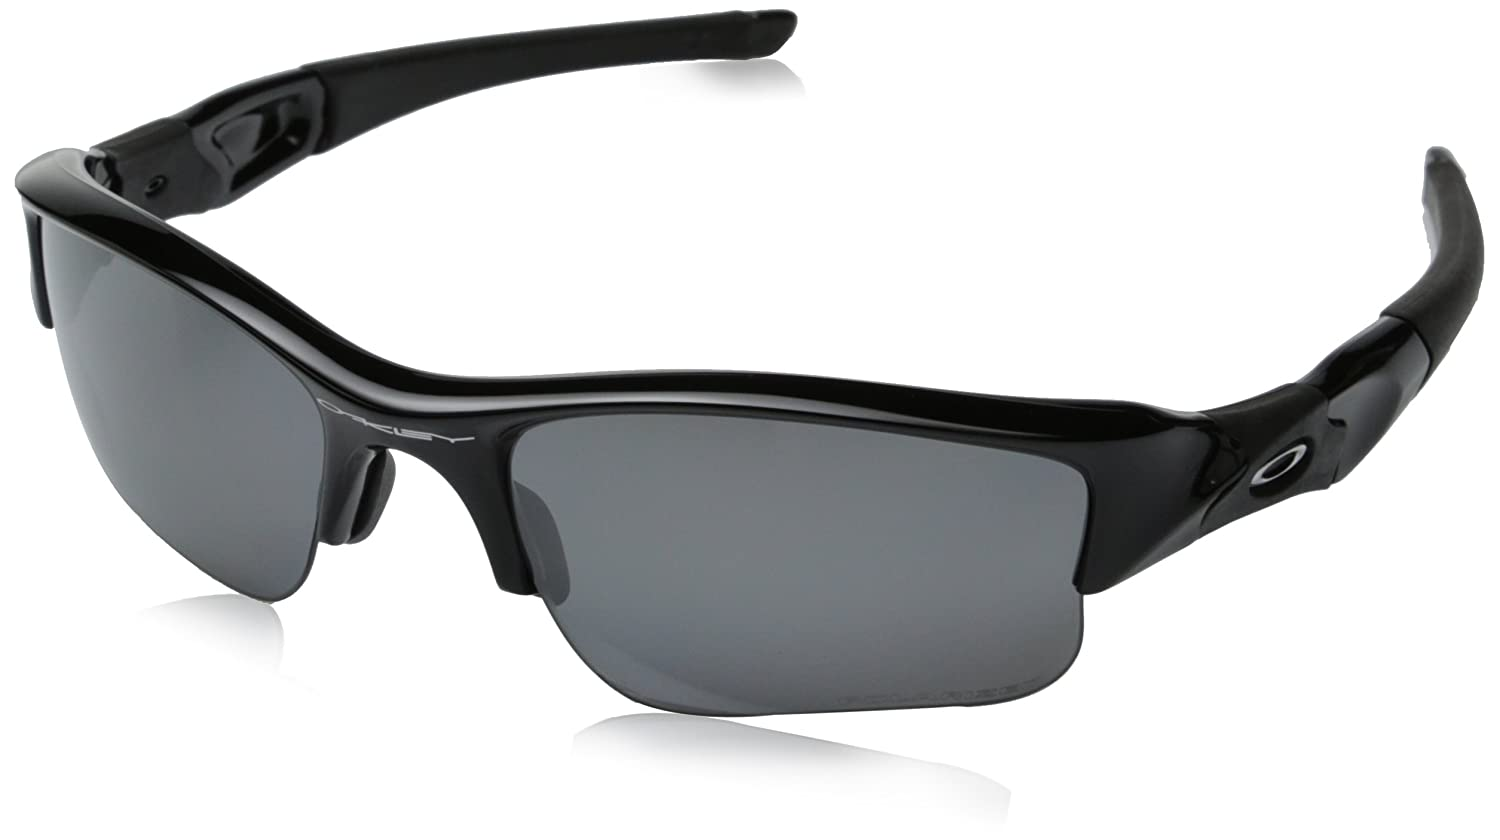 Amazon.com  Oakley Flak Jacket XLJ Adult Polarized Sport Outdoor  Sunglasses Eyewear - Jet Black Black Iridium One Size Fits All  Oakley   Shoes bf5635711f4